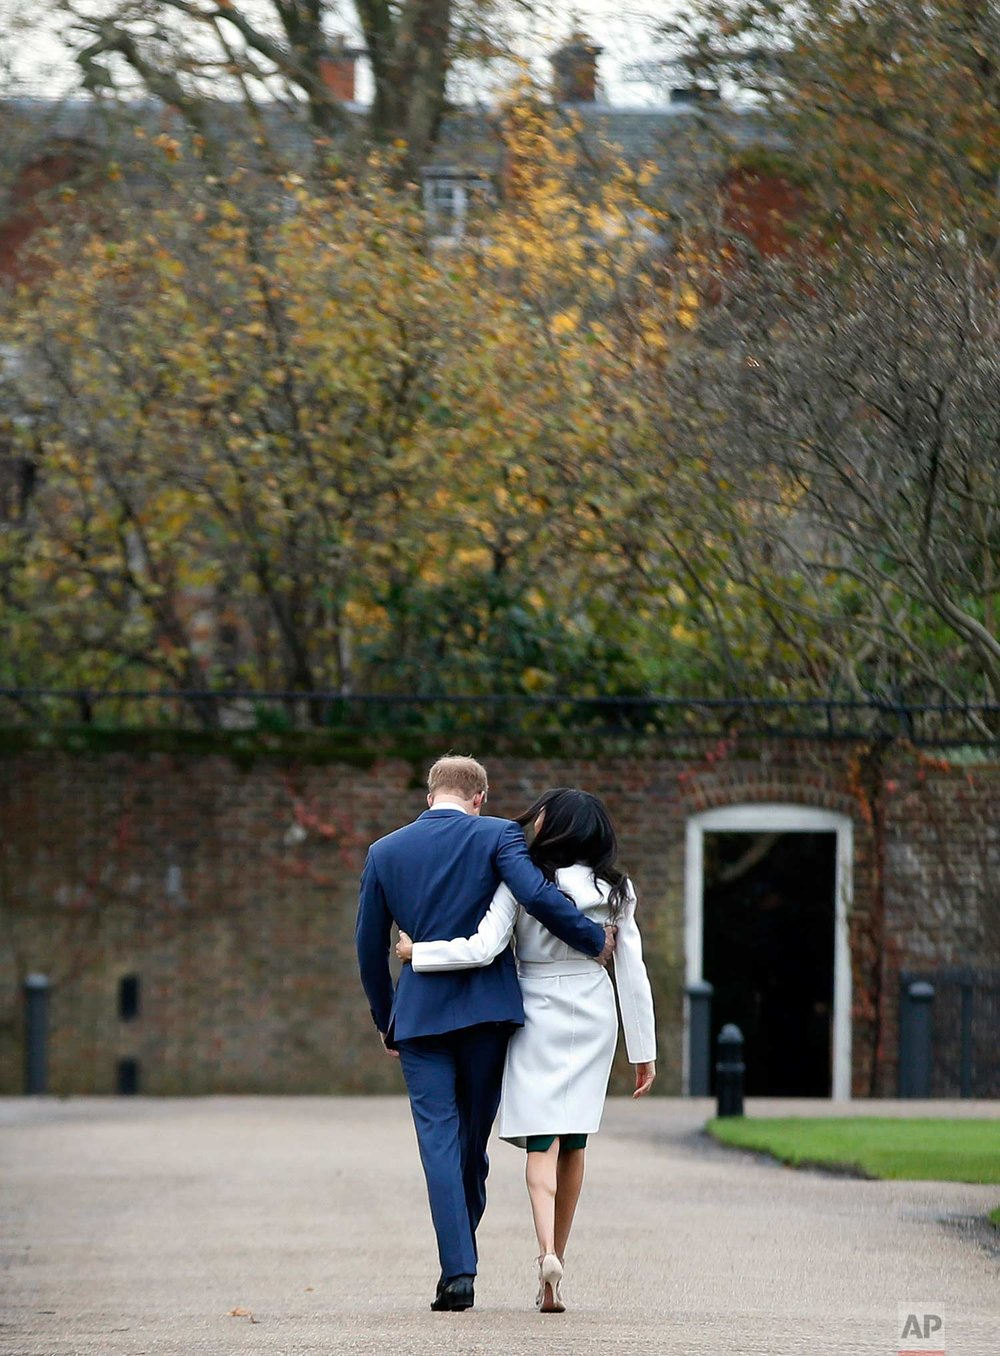 In this Monday Nov. 27, 2017 photo, Britain's Prince Harry and Meghan Markle walk away after posing for the media in the grounds of Kensington Palace in London. It was announced Monday that Prince Harry, fifth in line for the British throne, will marry American actress Meghan Markle in the spring, confirming months of rumors. (AP Photo/Alastair Grant)